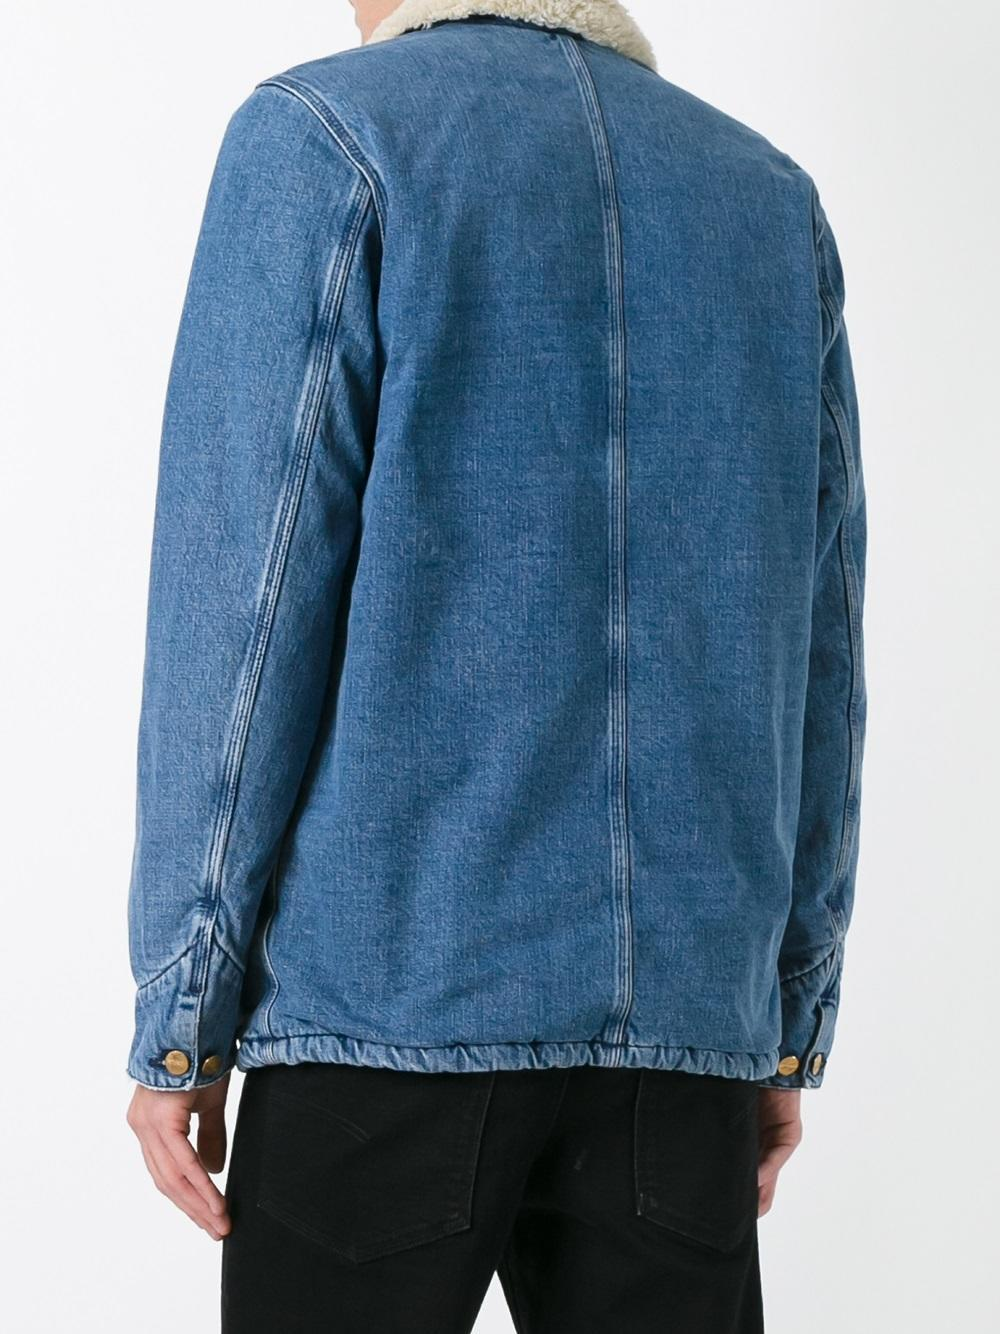 Carhartt Phoenix Denim Jacket In Blue For Men Lyst